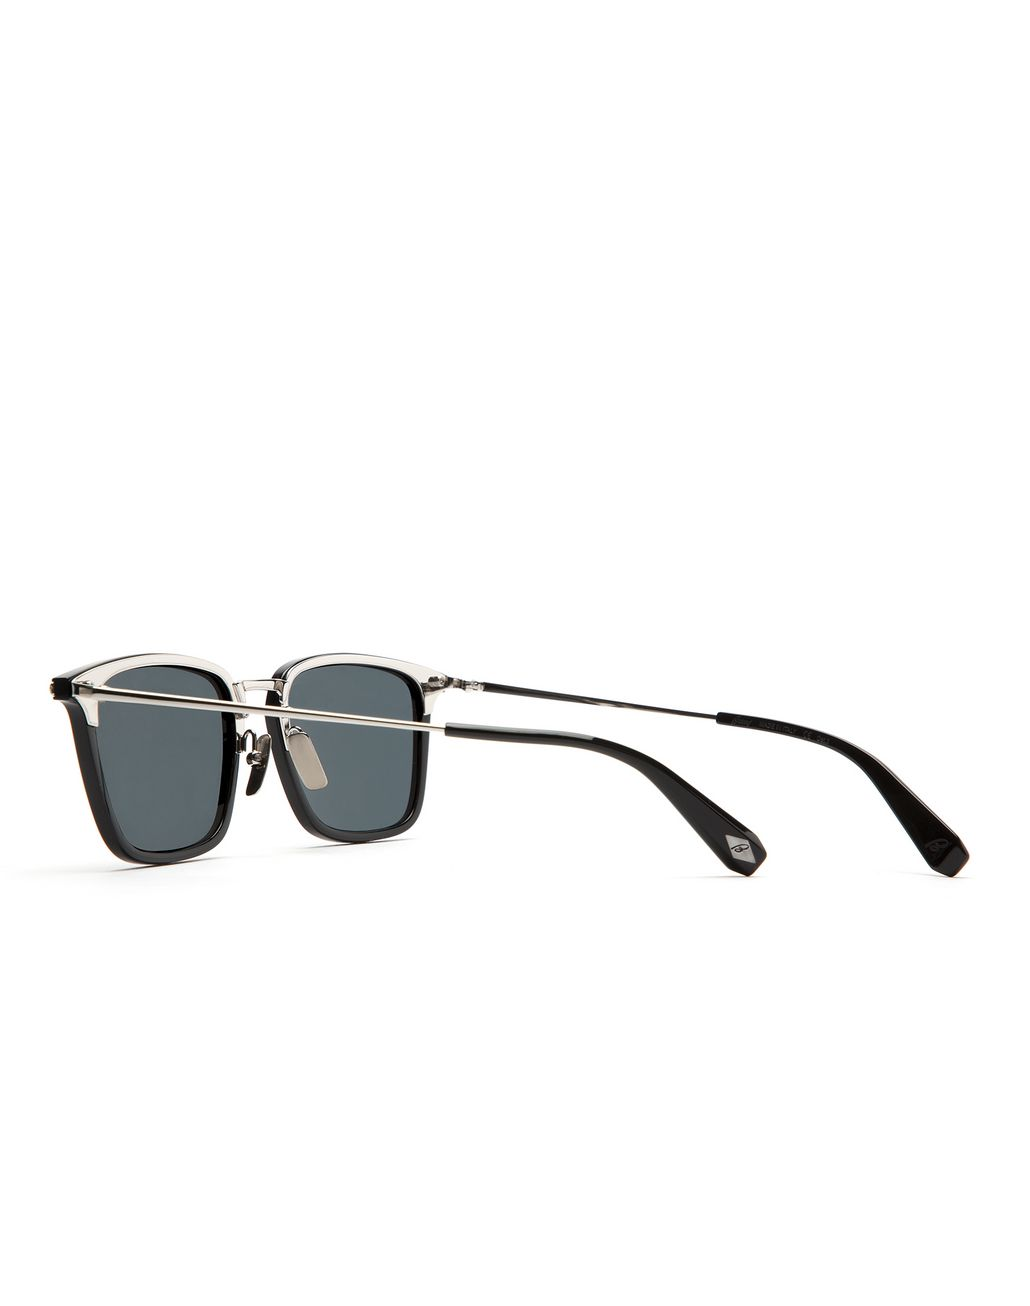 BRIONI Shiny Black Squared Sunglasses with Gray Lenses  Sunglasses [*** pickupInStoreShippingNotGuaranteed_info ***] d